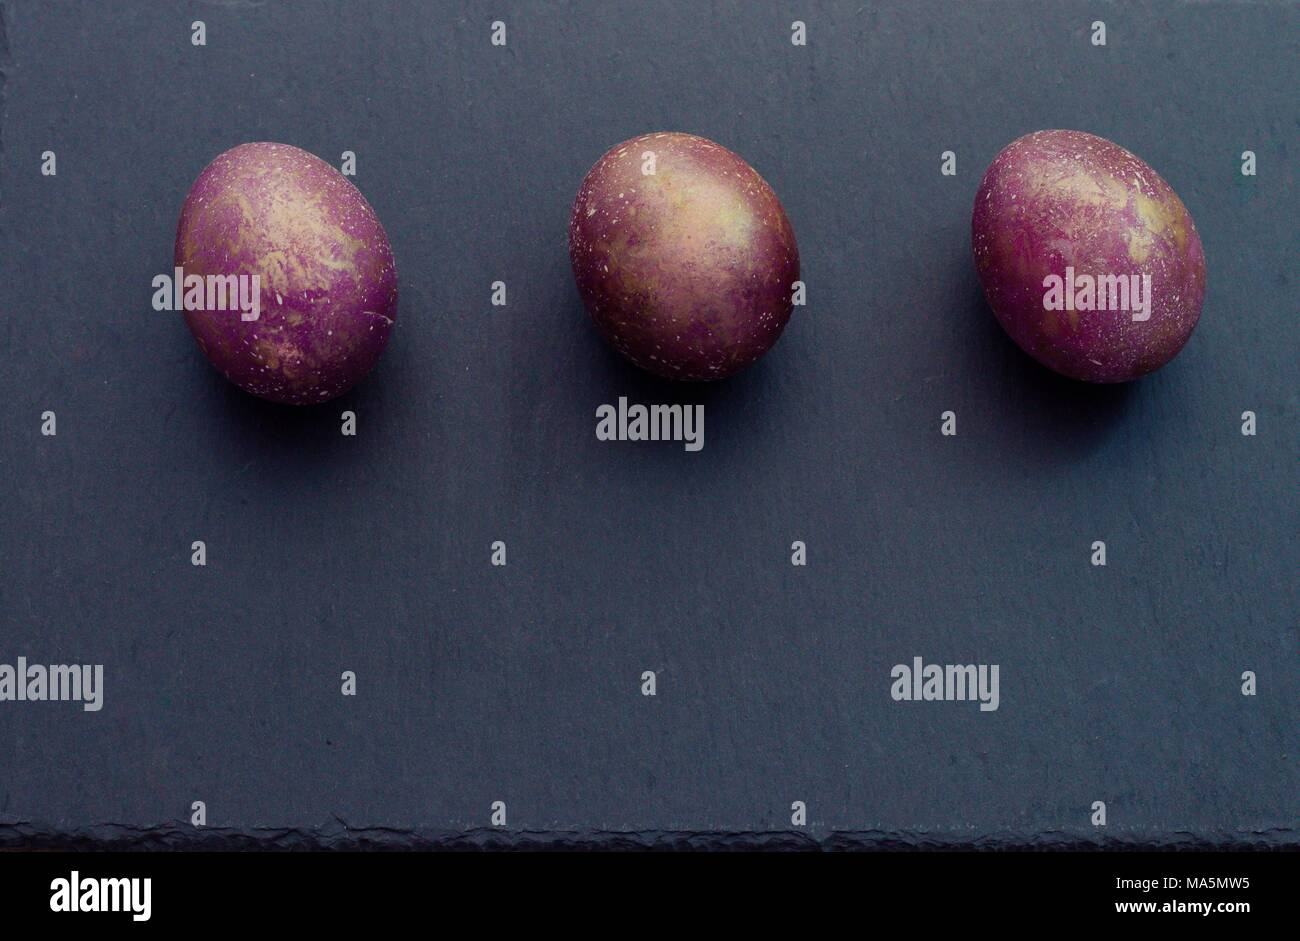 66bd40a054d1 Fantasy cosmic marble purple golden easter three eggs on slate cutting  board black background. Top view. Copyspace